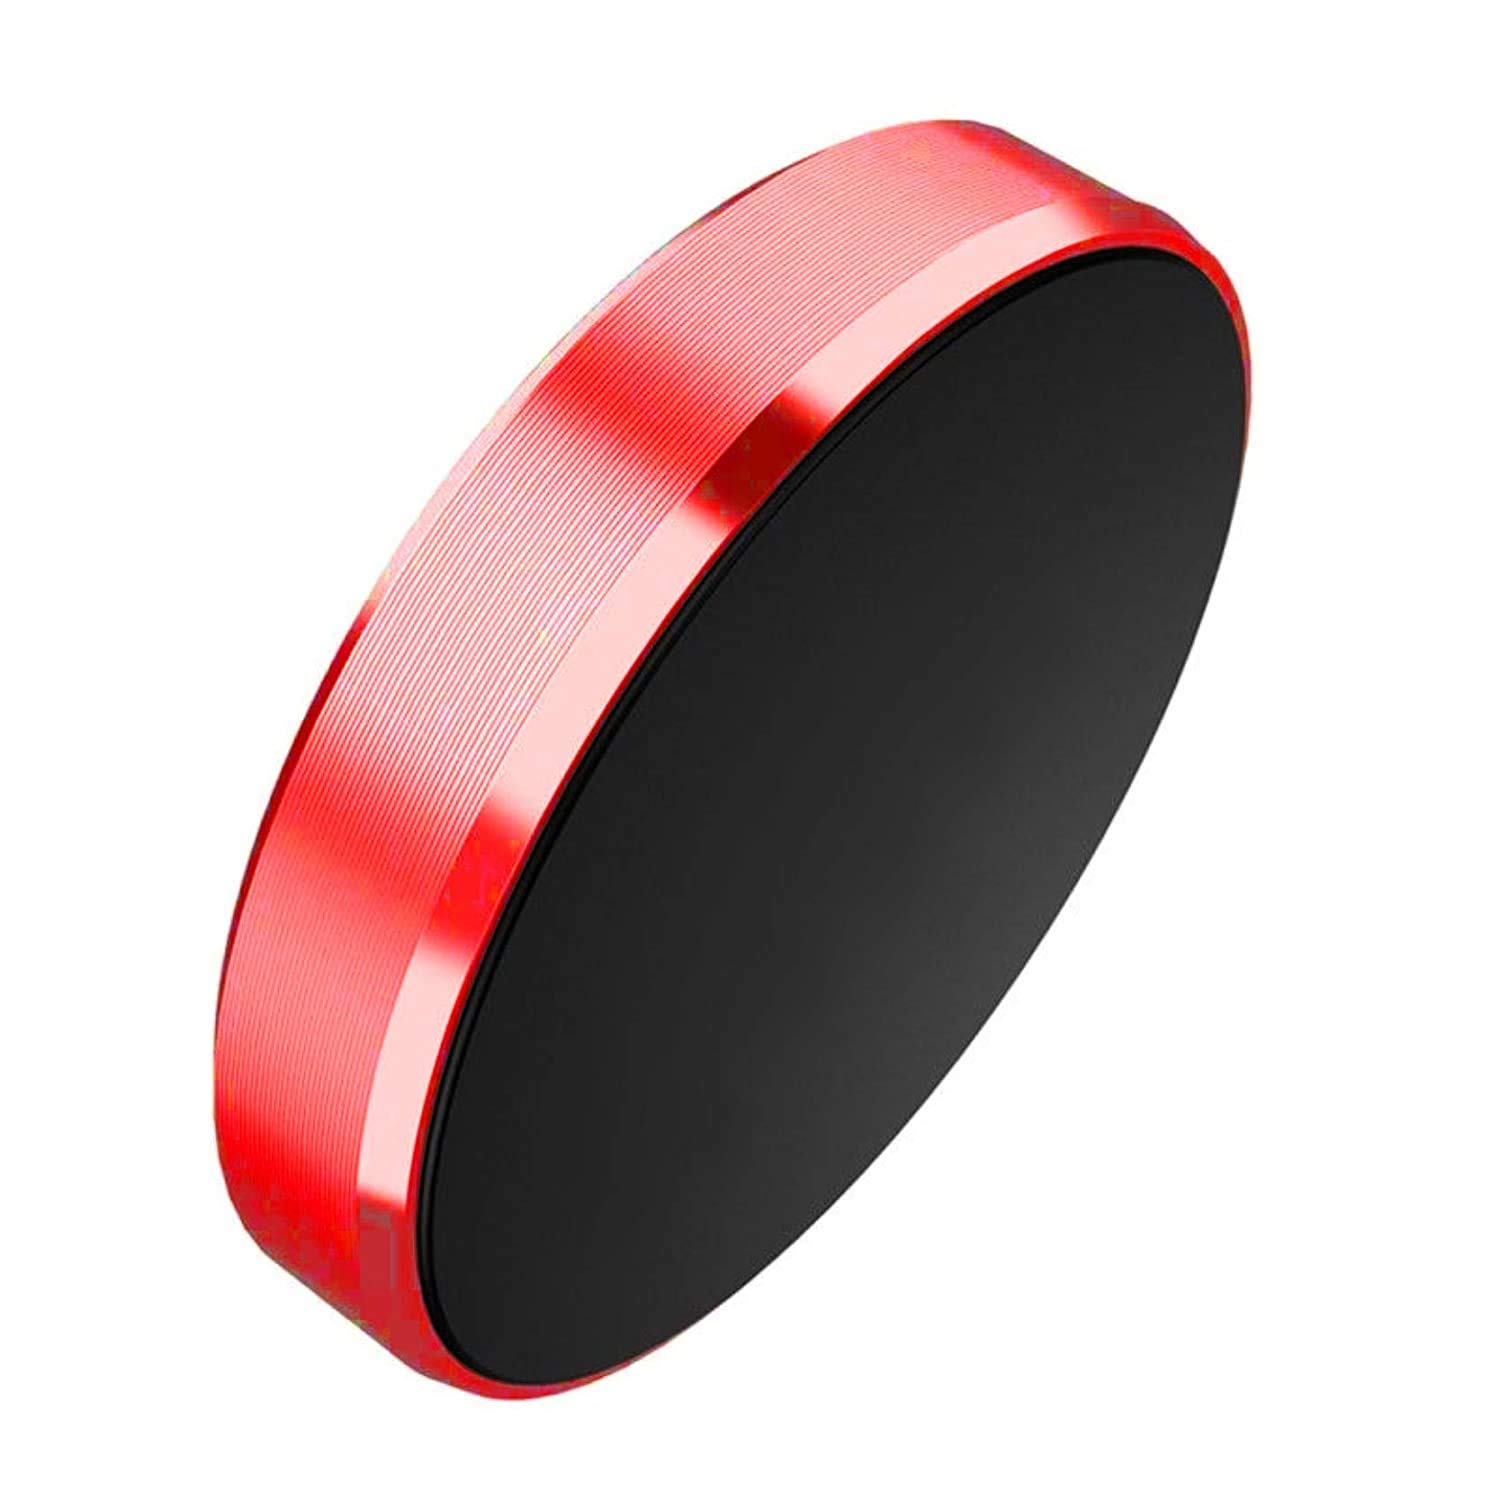 mini-magnetic-car-dashboard-mount-mobile-phone-holder-with-metal-body-made-in-india-red